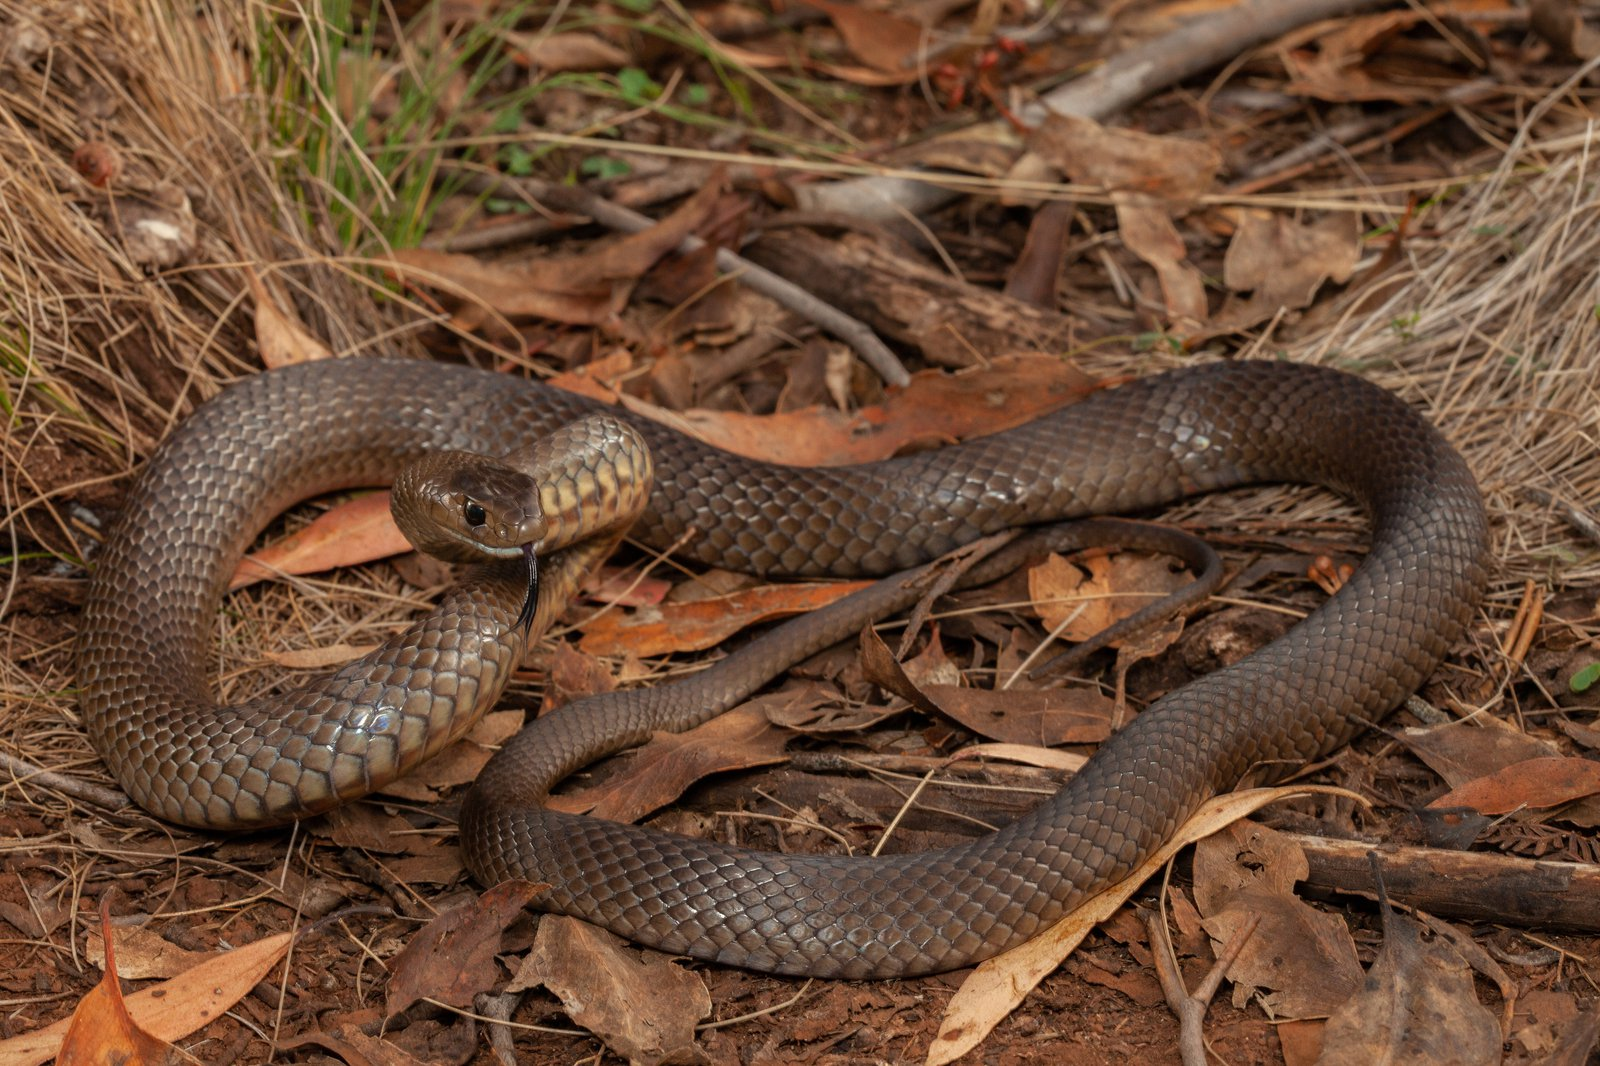 Eastern Brown Snake The Australian Museum Anatomy Diagram Image Search Results Pseudonaja Textilis